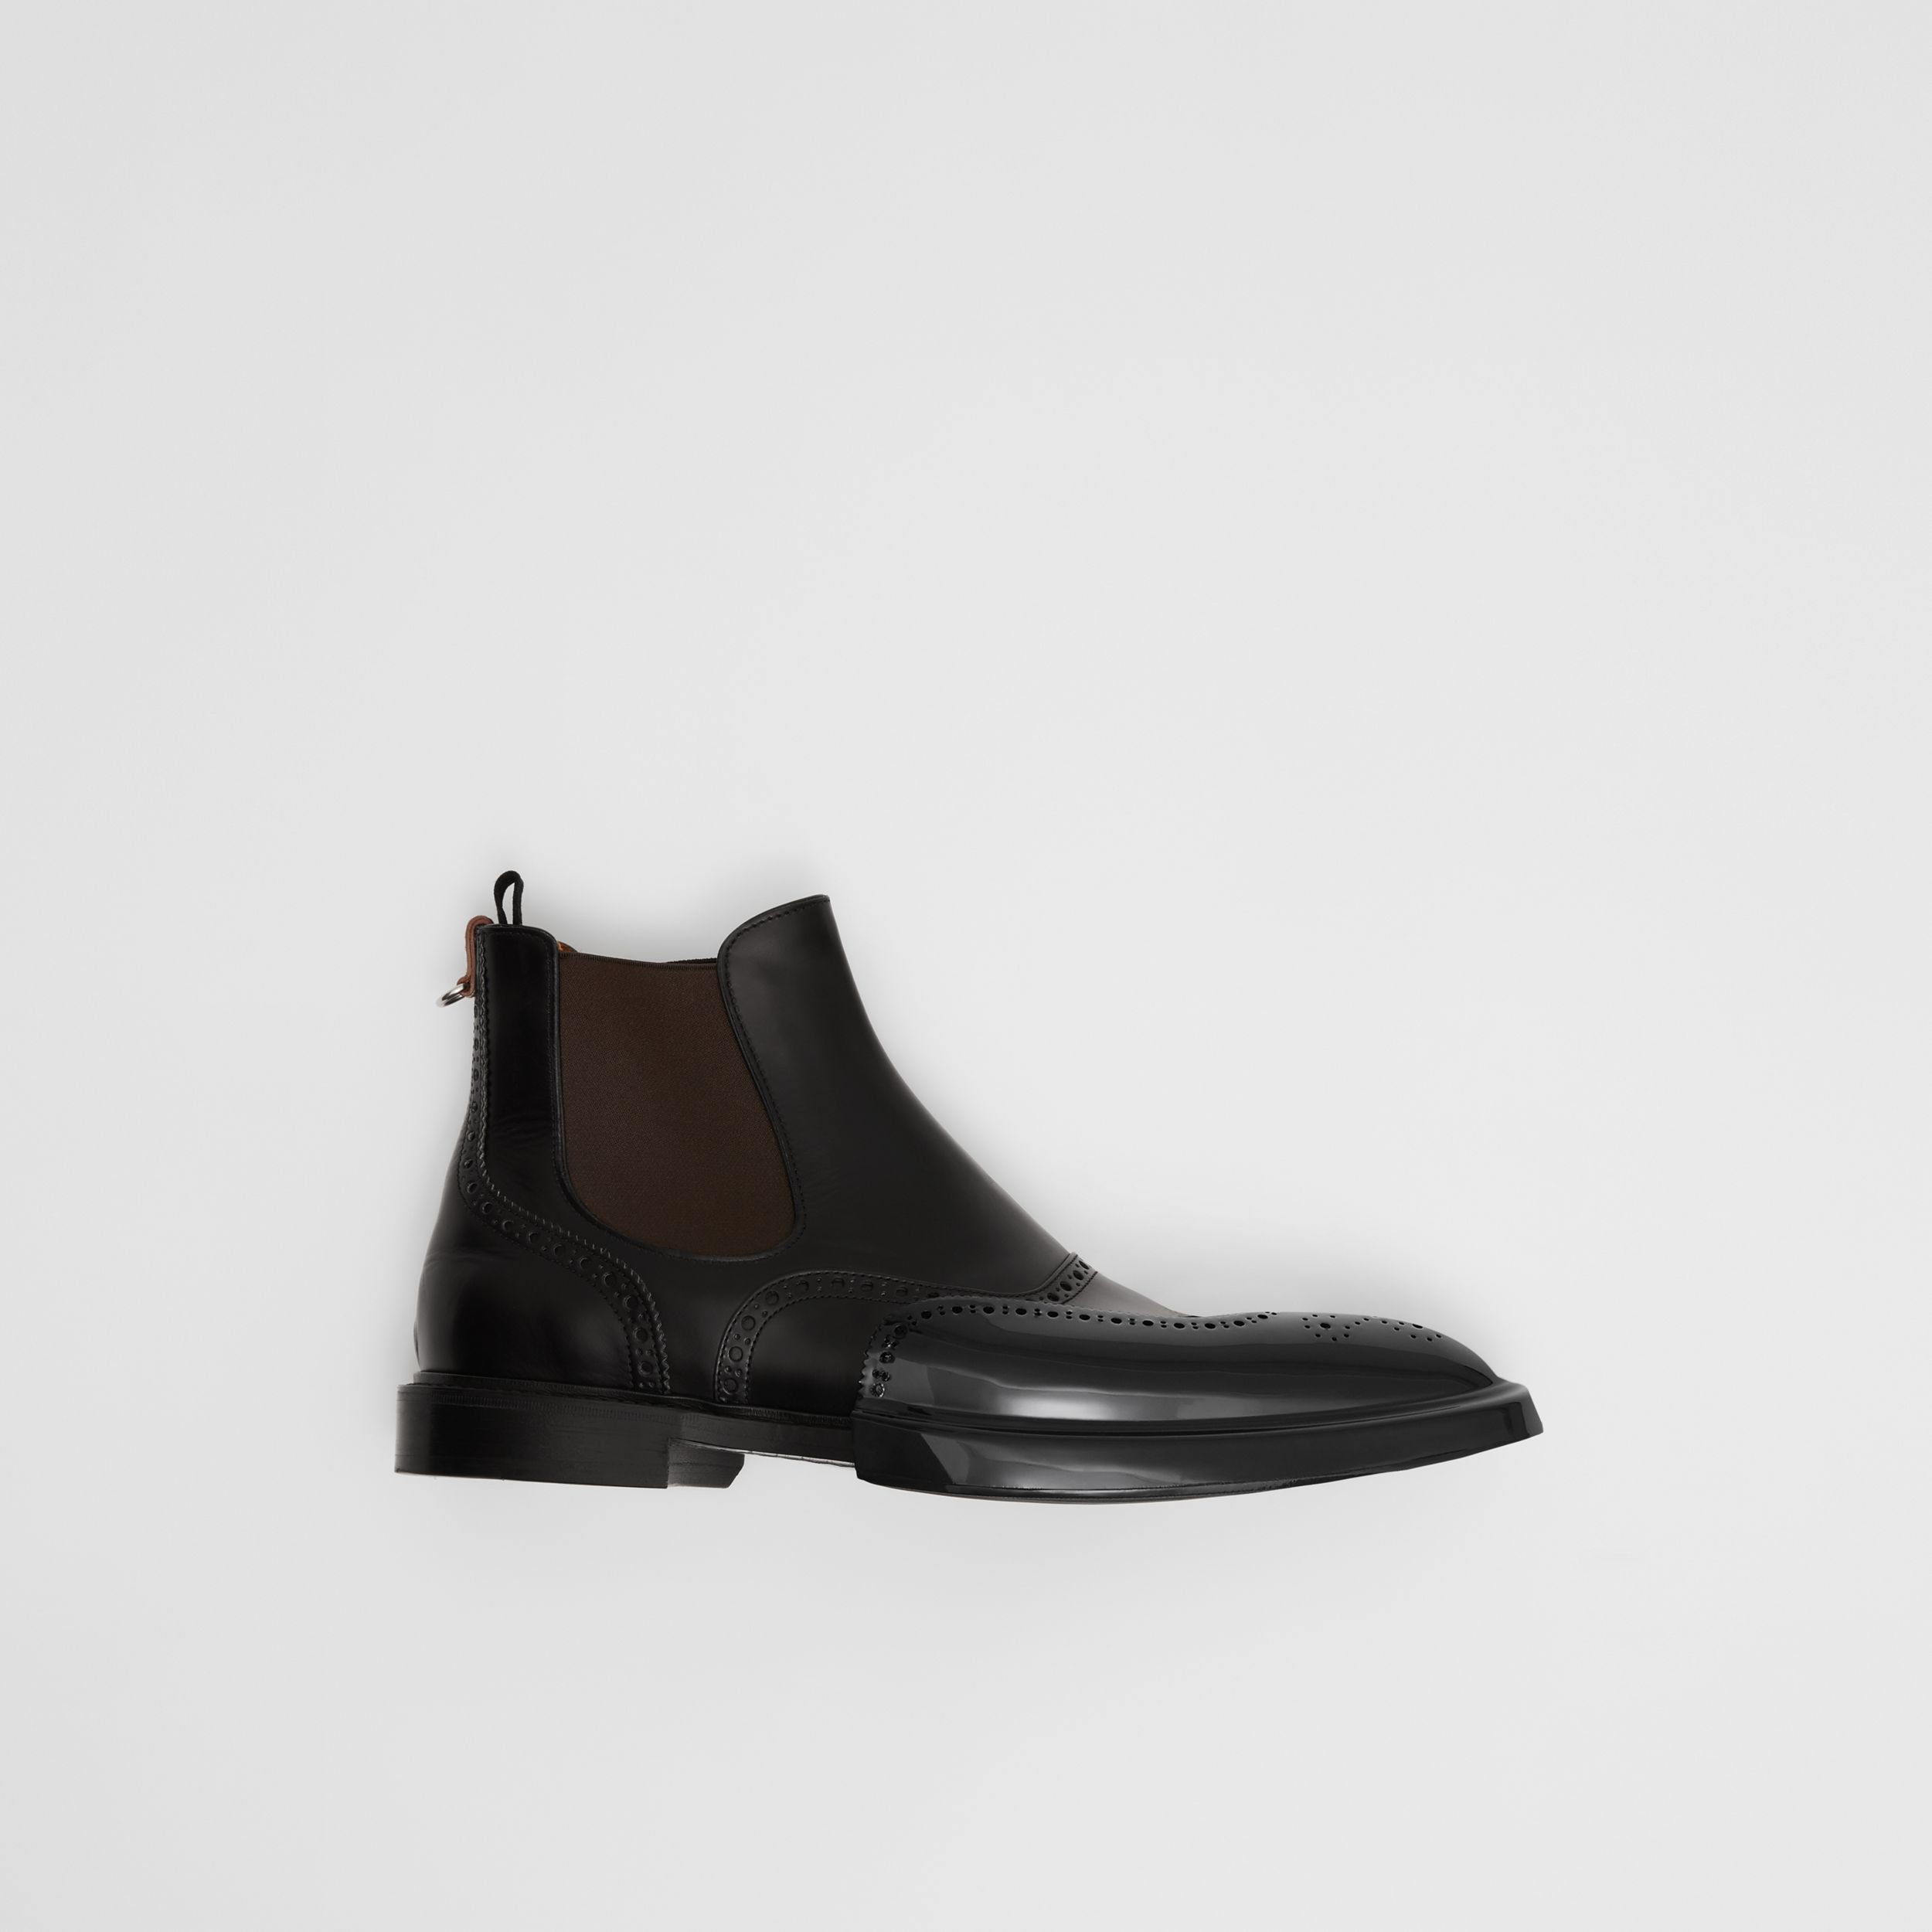 Toe Cap Detail Leather Chelsea Boots in Black | Burberry - 1